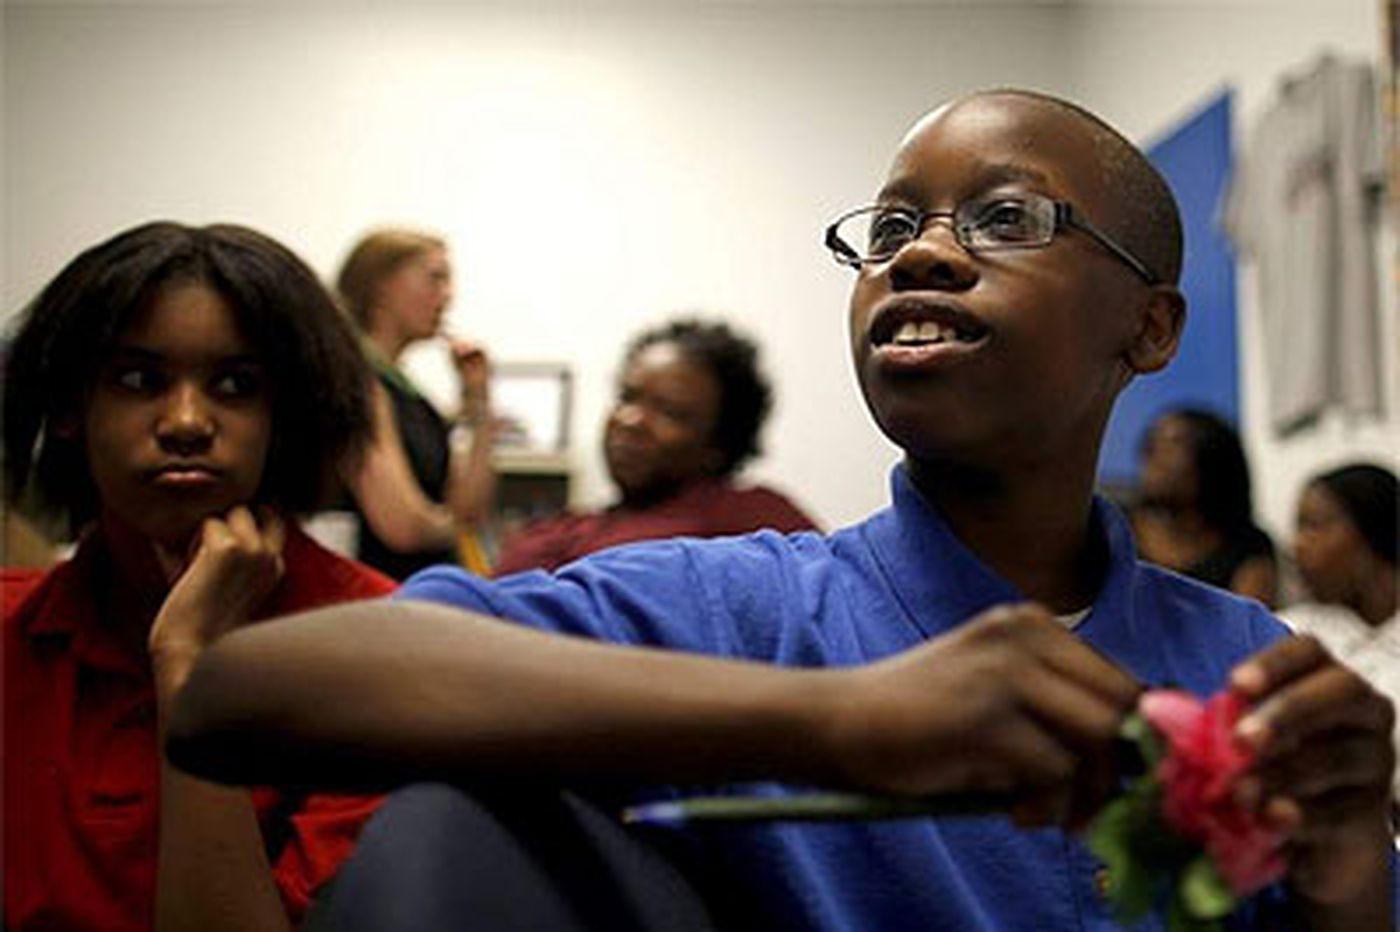 KIPP students show major improvement, study finds